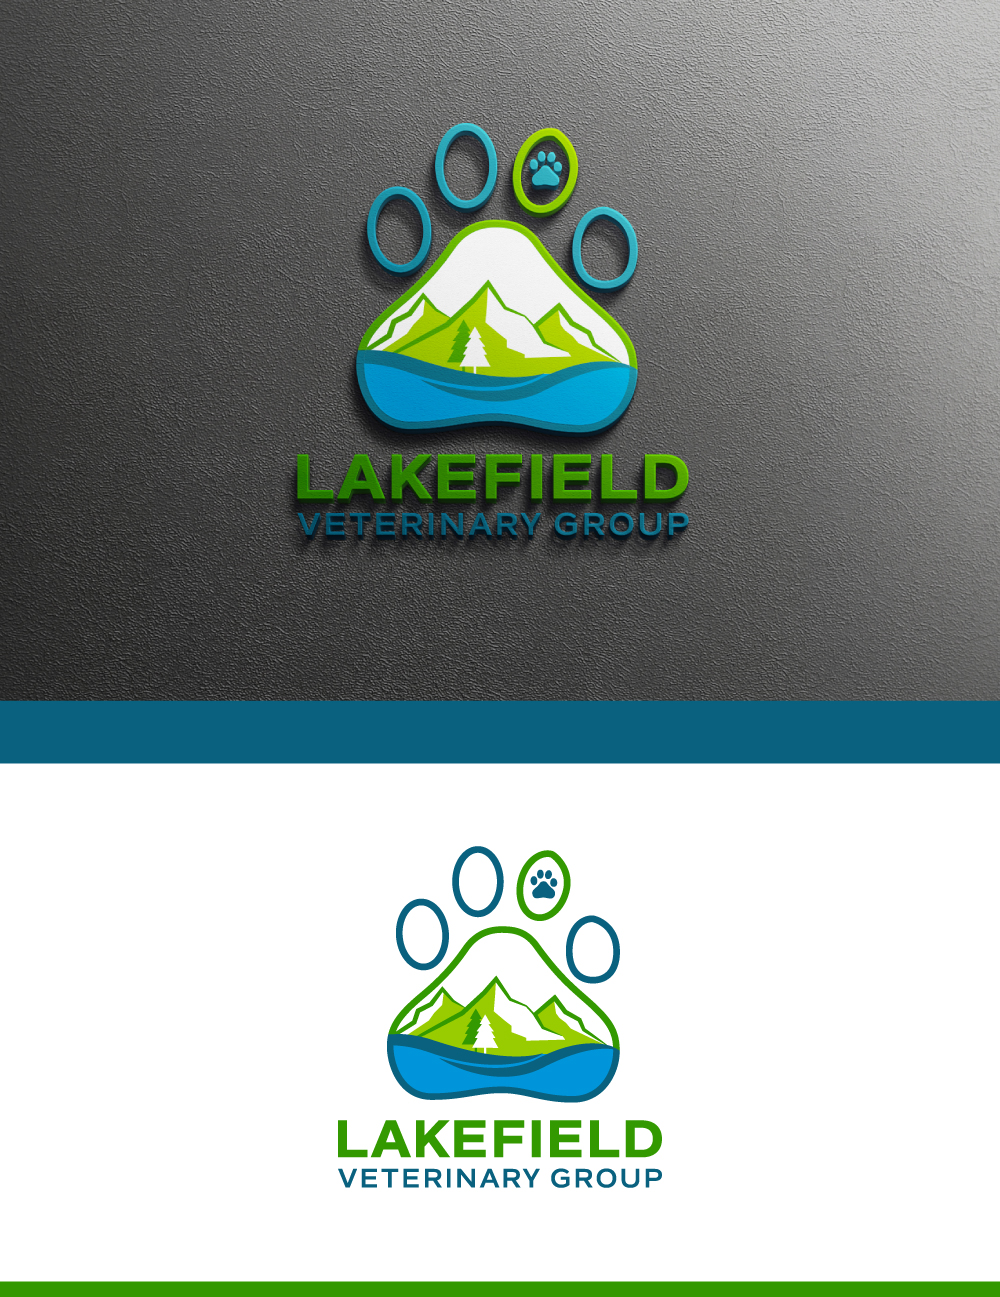 Logo Design by Tauhid Shaikh - Entry No. 62 in the Logo Design Contest Inspiring Logo Design for Lakefield Veterinary Group.